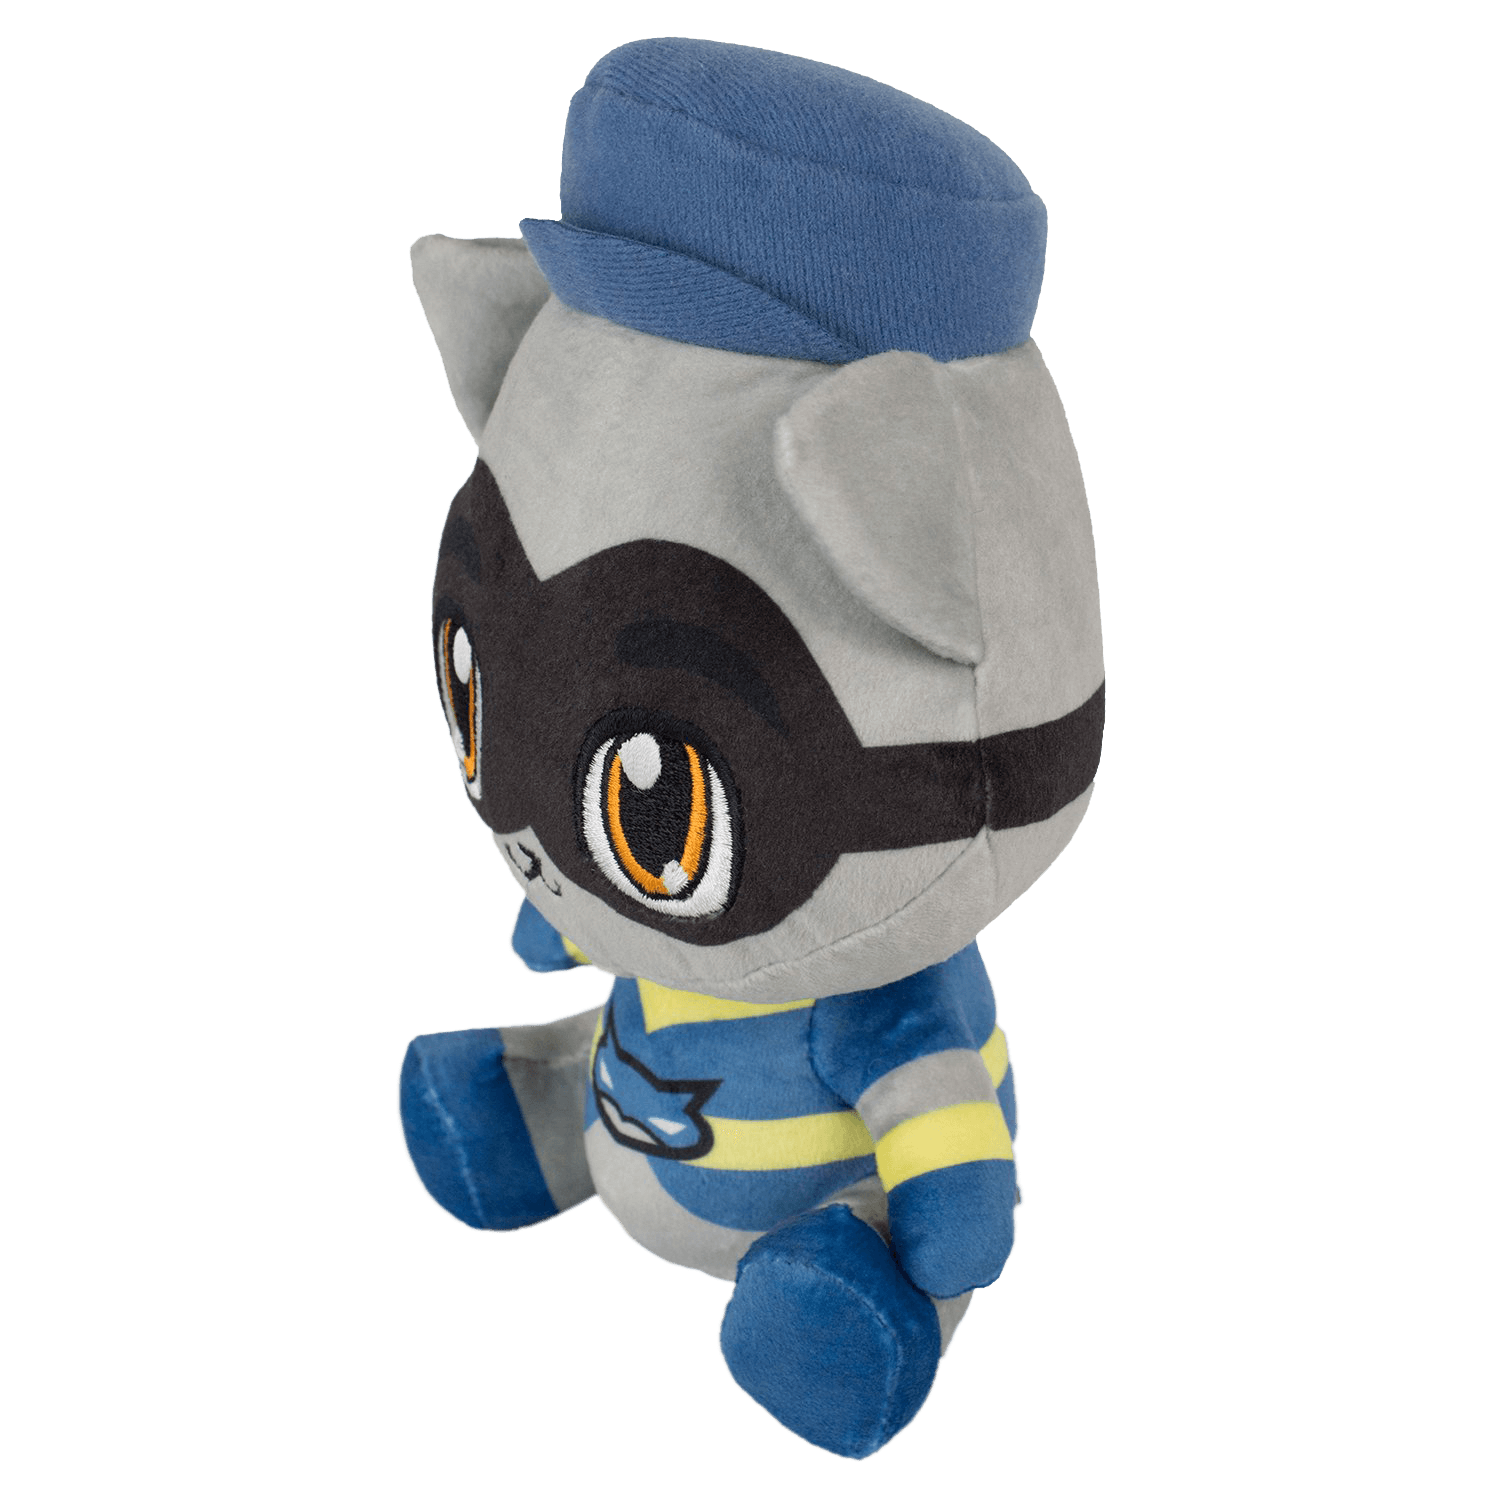 Sly Cooper Stuffed Animal, Sly Cooper Plush Sly Cooper Stubbins Plushies Collectibles Game Legends Legendary Merch